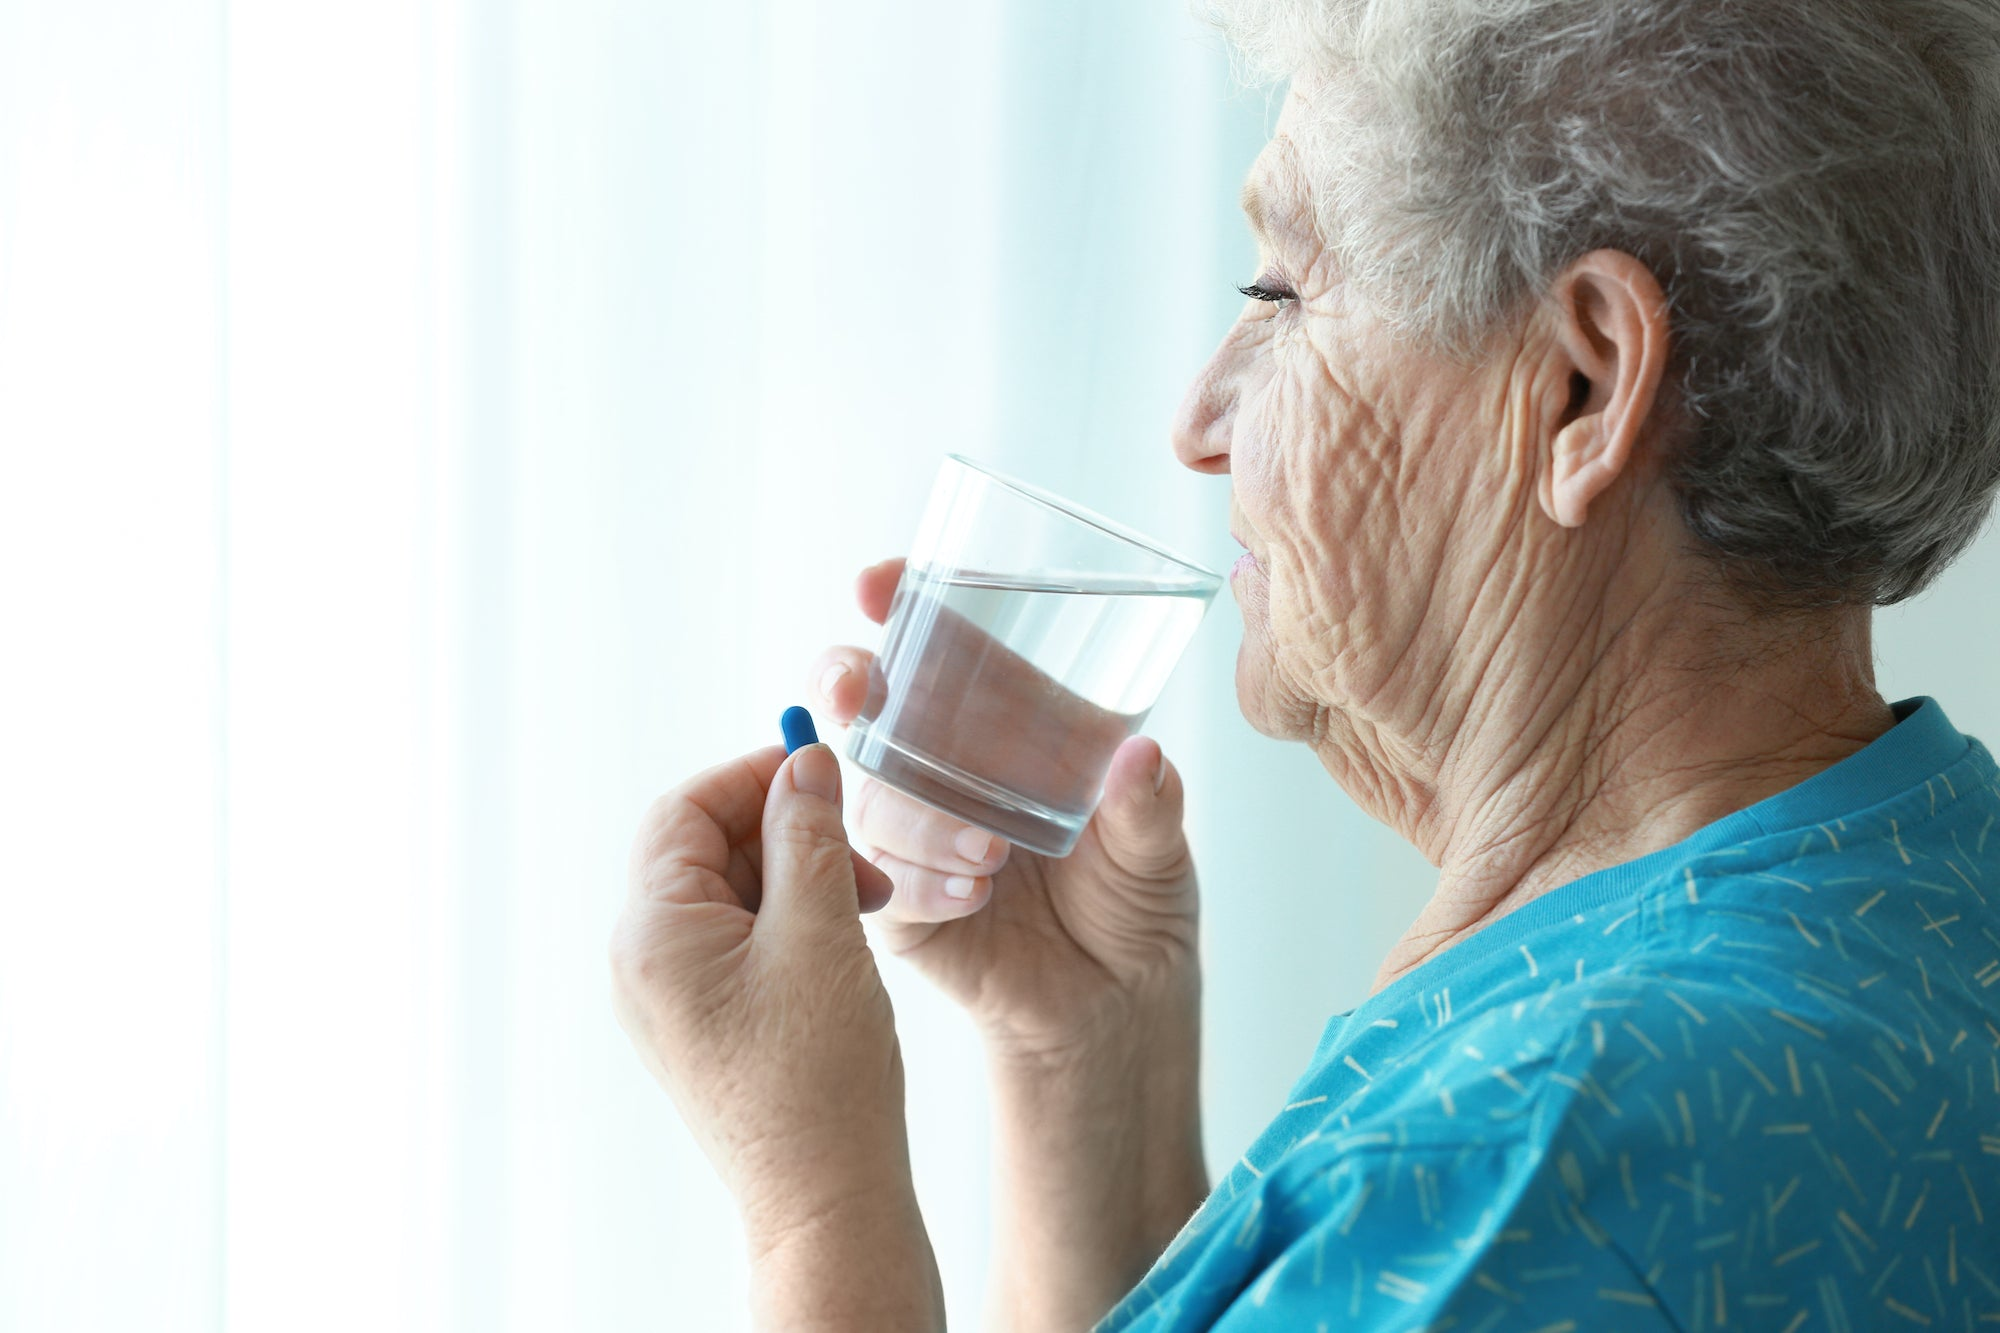 A woman drinks water from a glass due to her droplet hydration reminder as she stares out a window taking her dementia medication